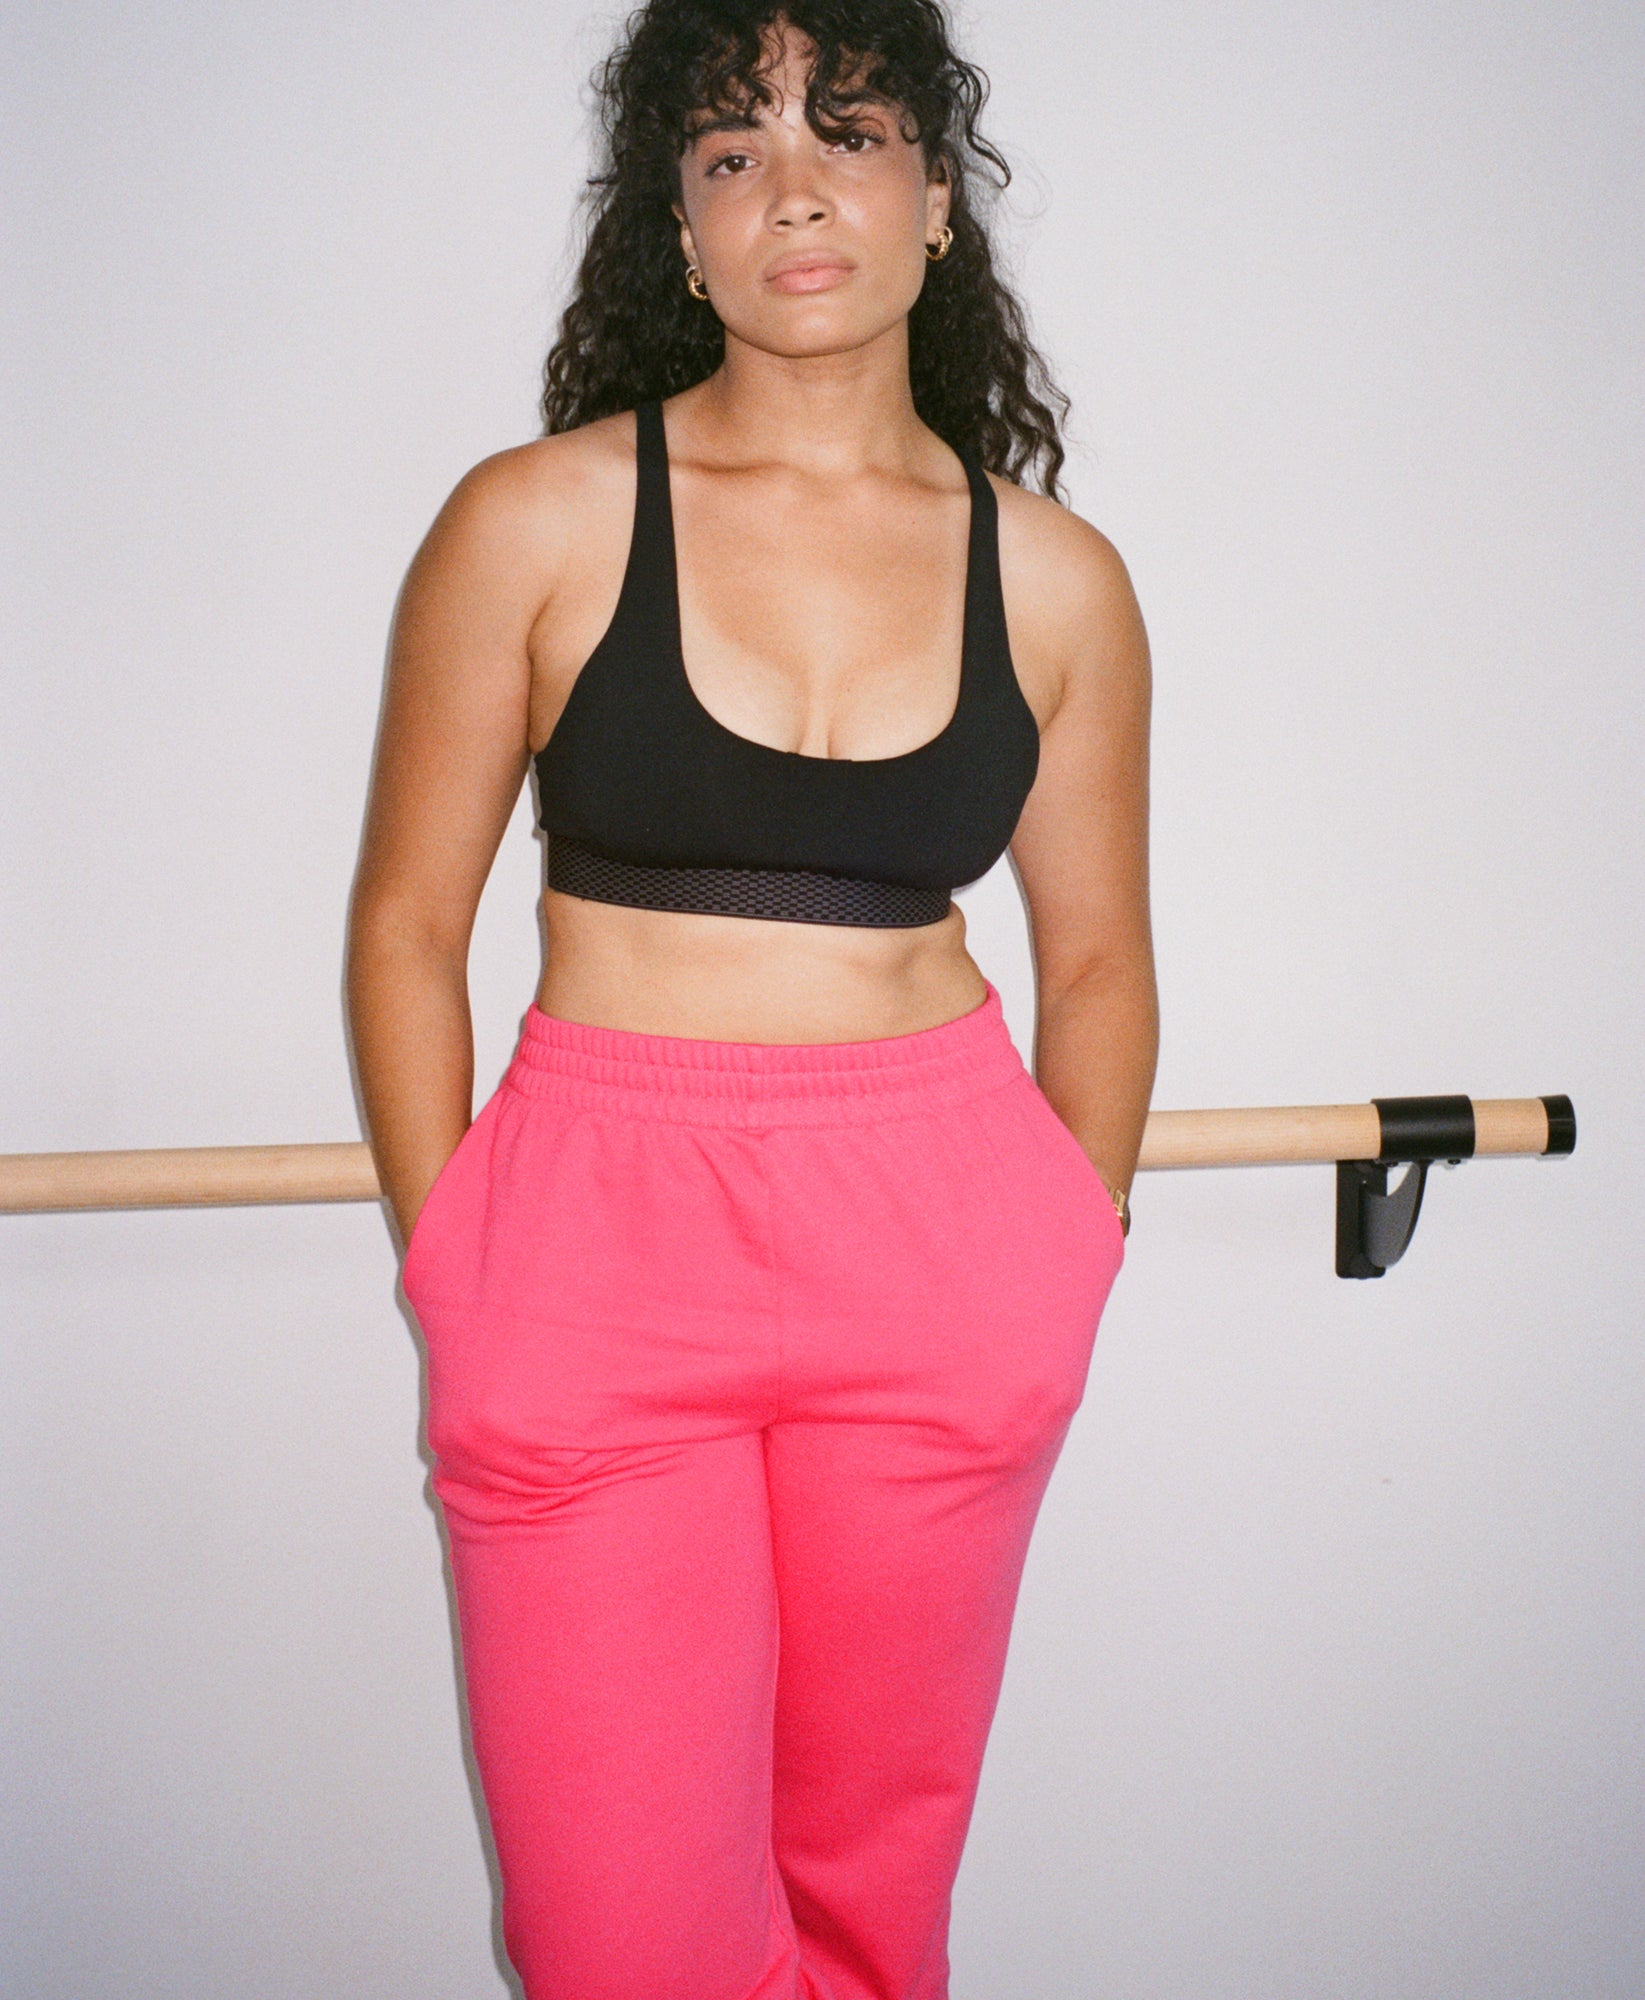 Wear One's At French Terry Sweatpants in Watermelon on Model Front View